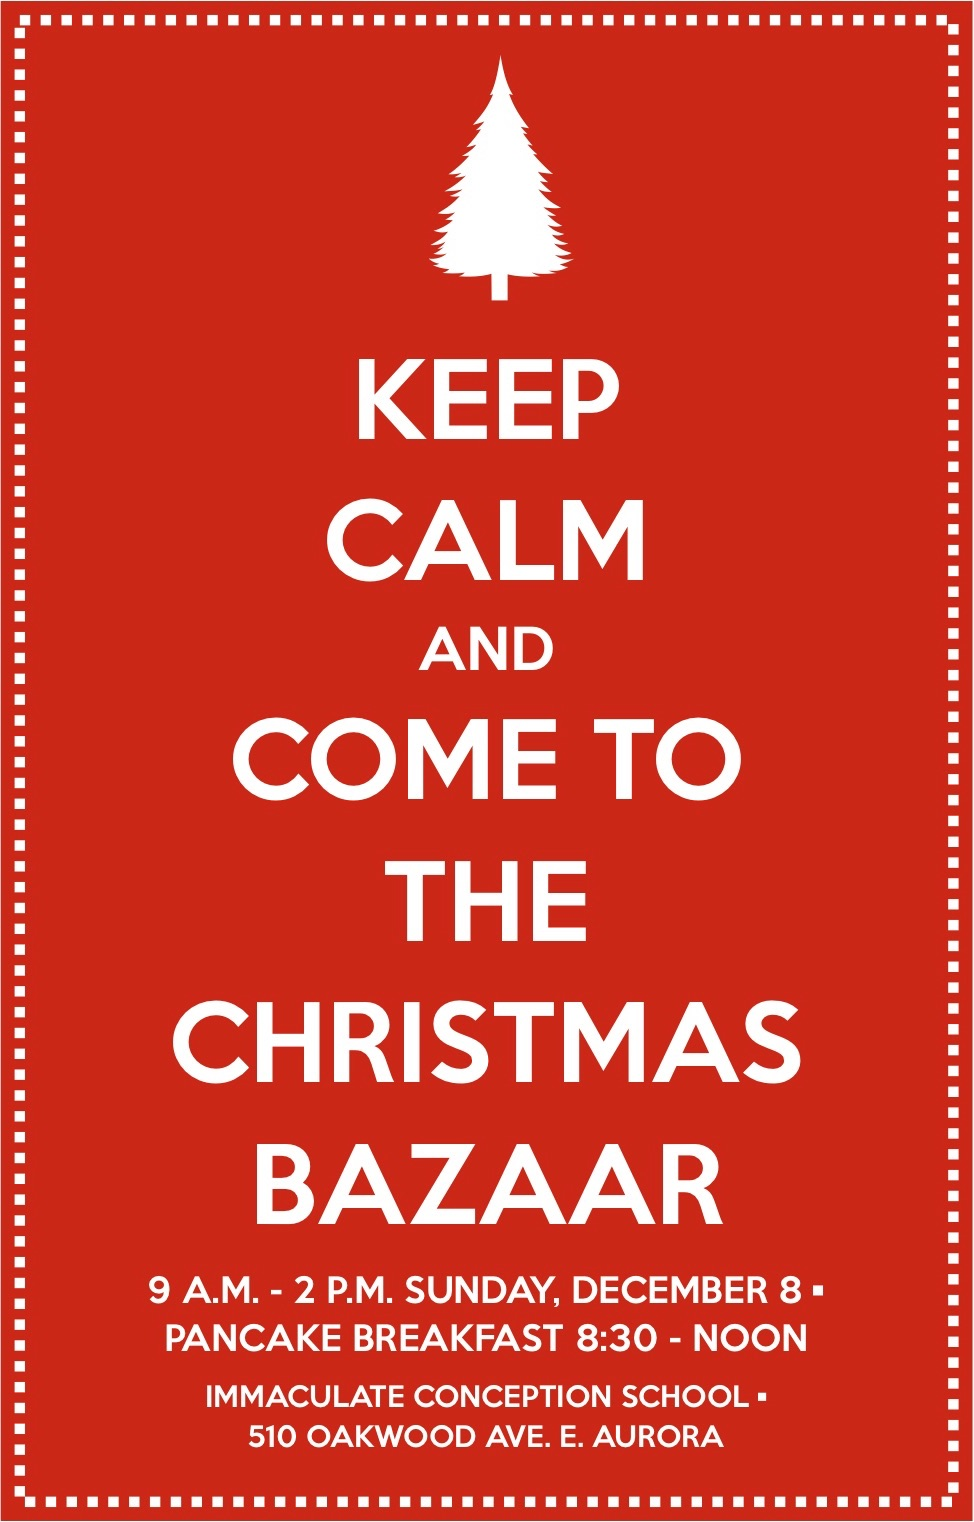 Bazaar Fleyer with info from Event Page